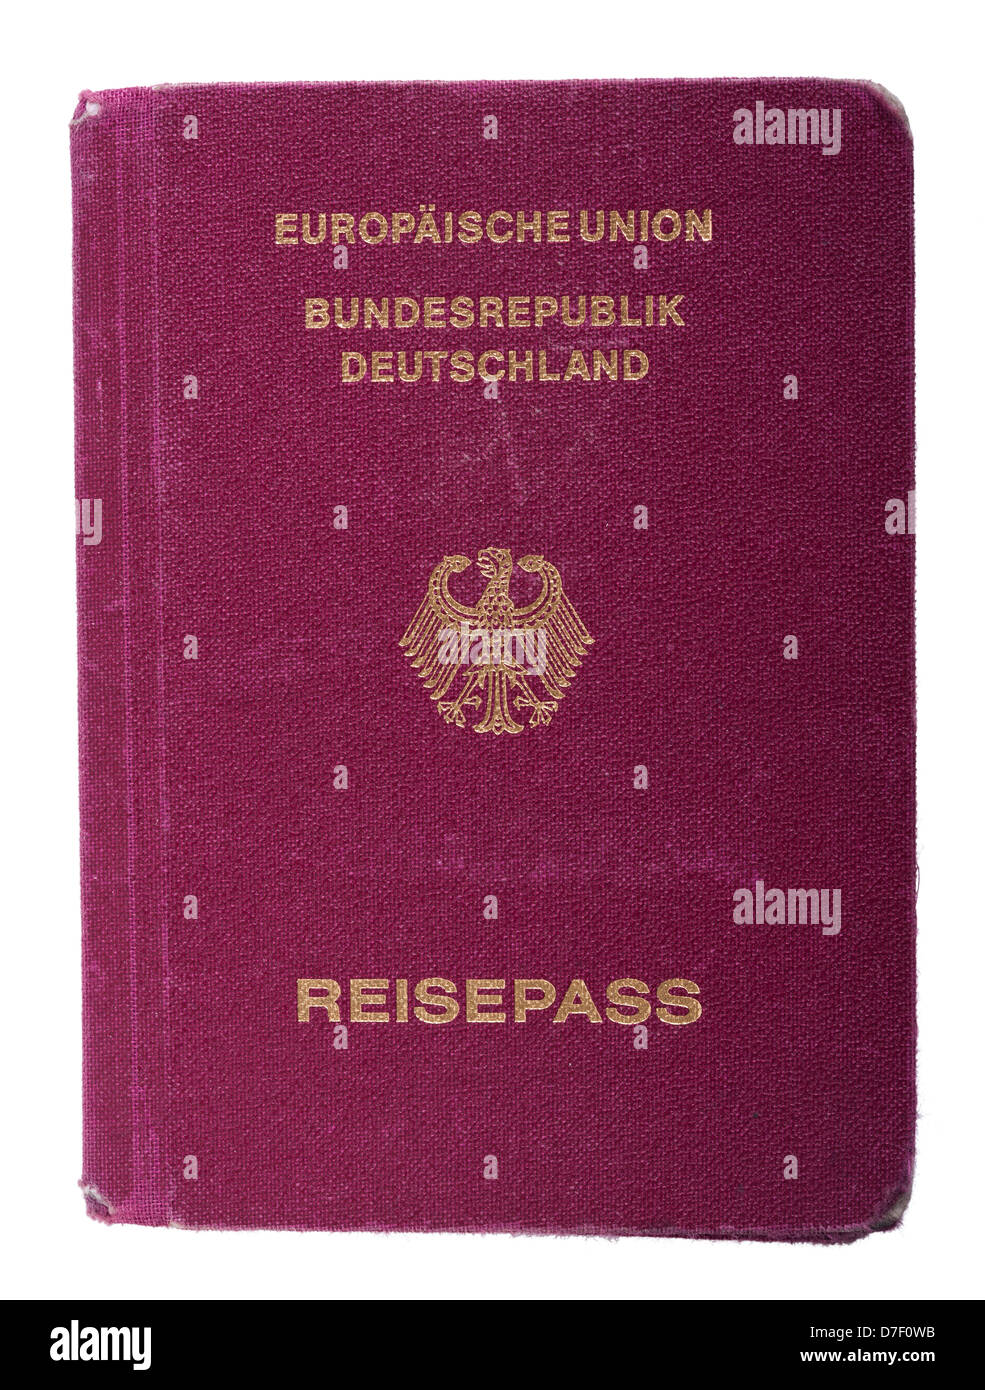 A worn out used German passport Isolated on white background. - Stock Image